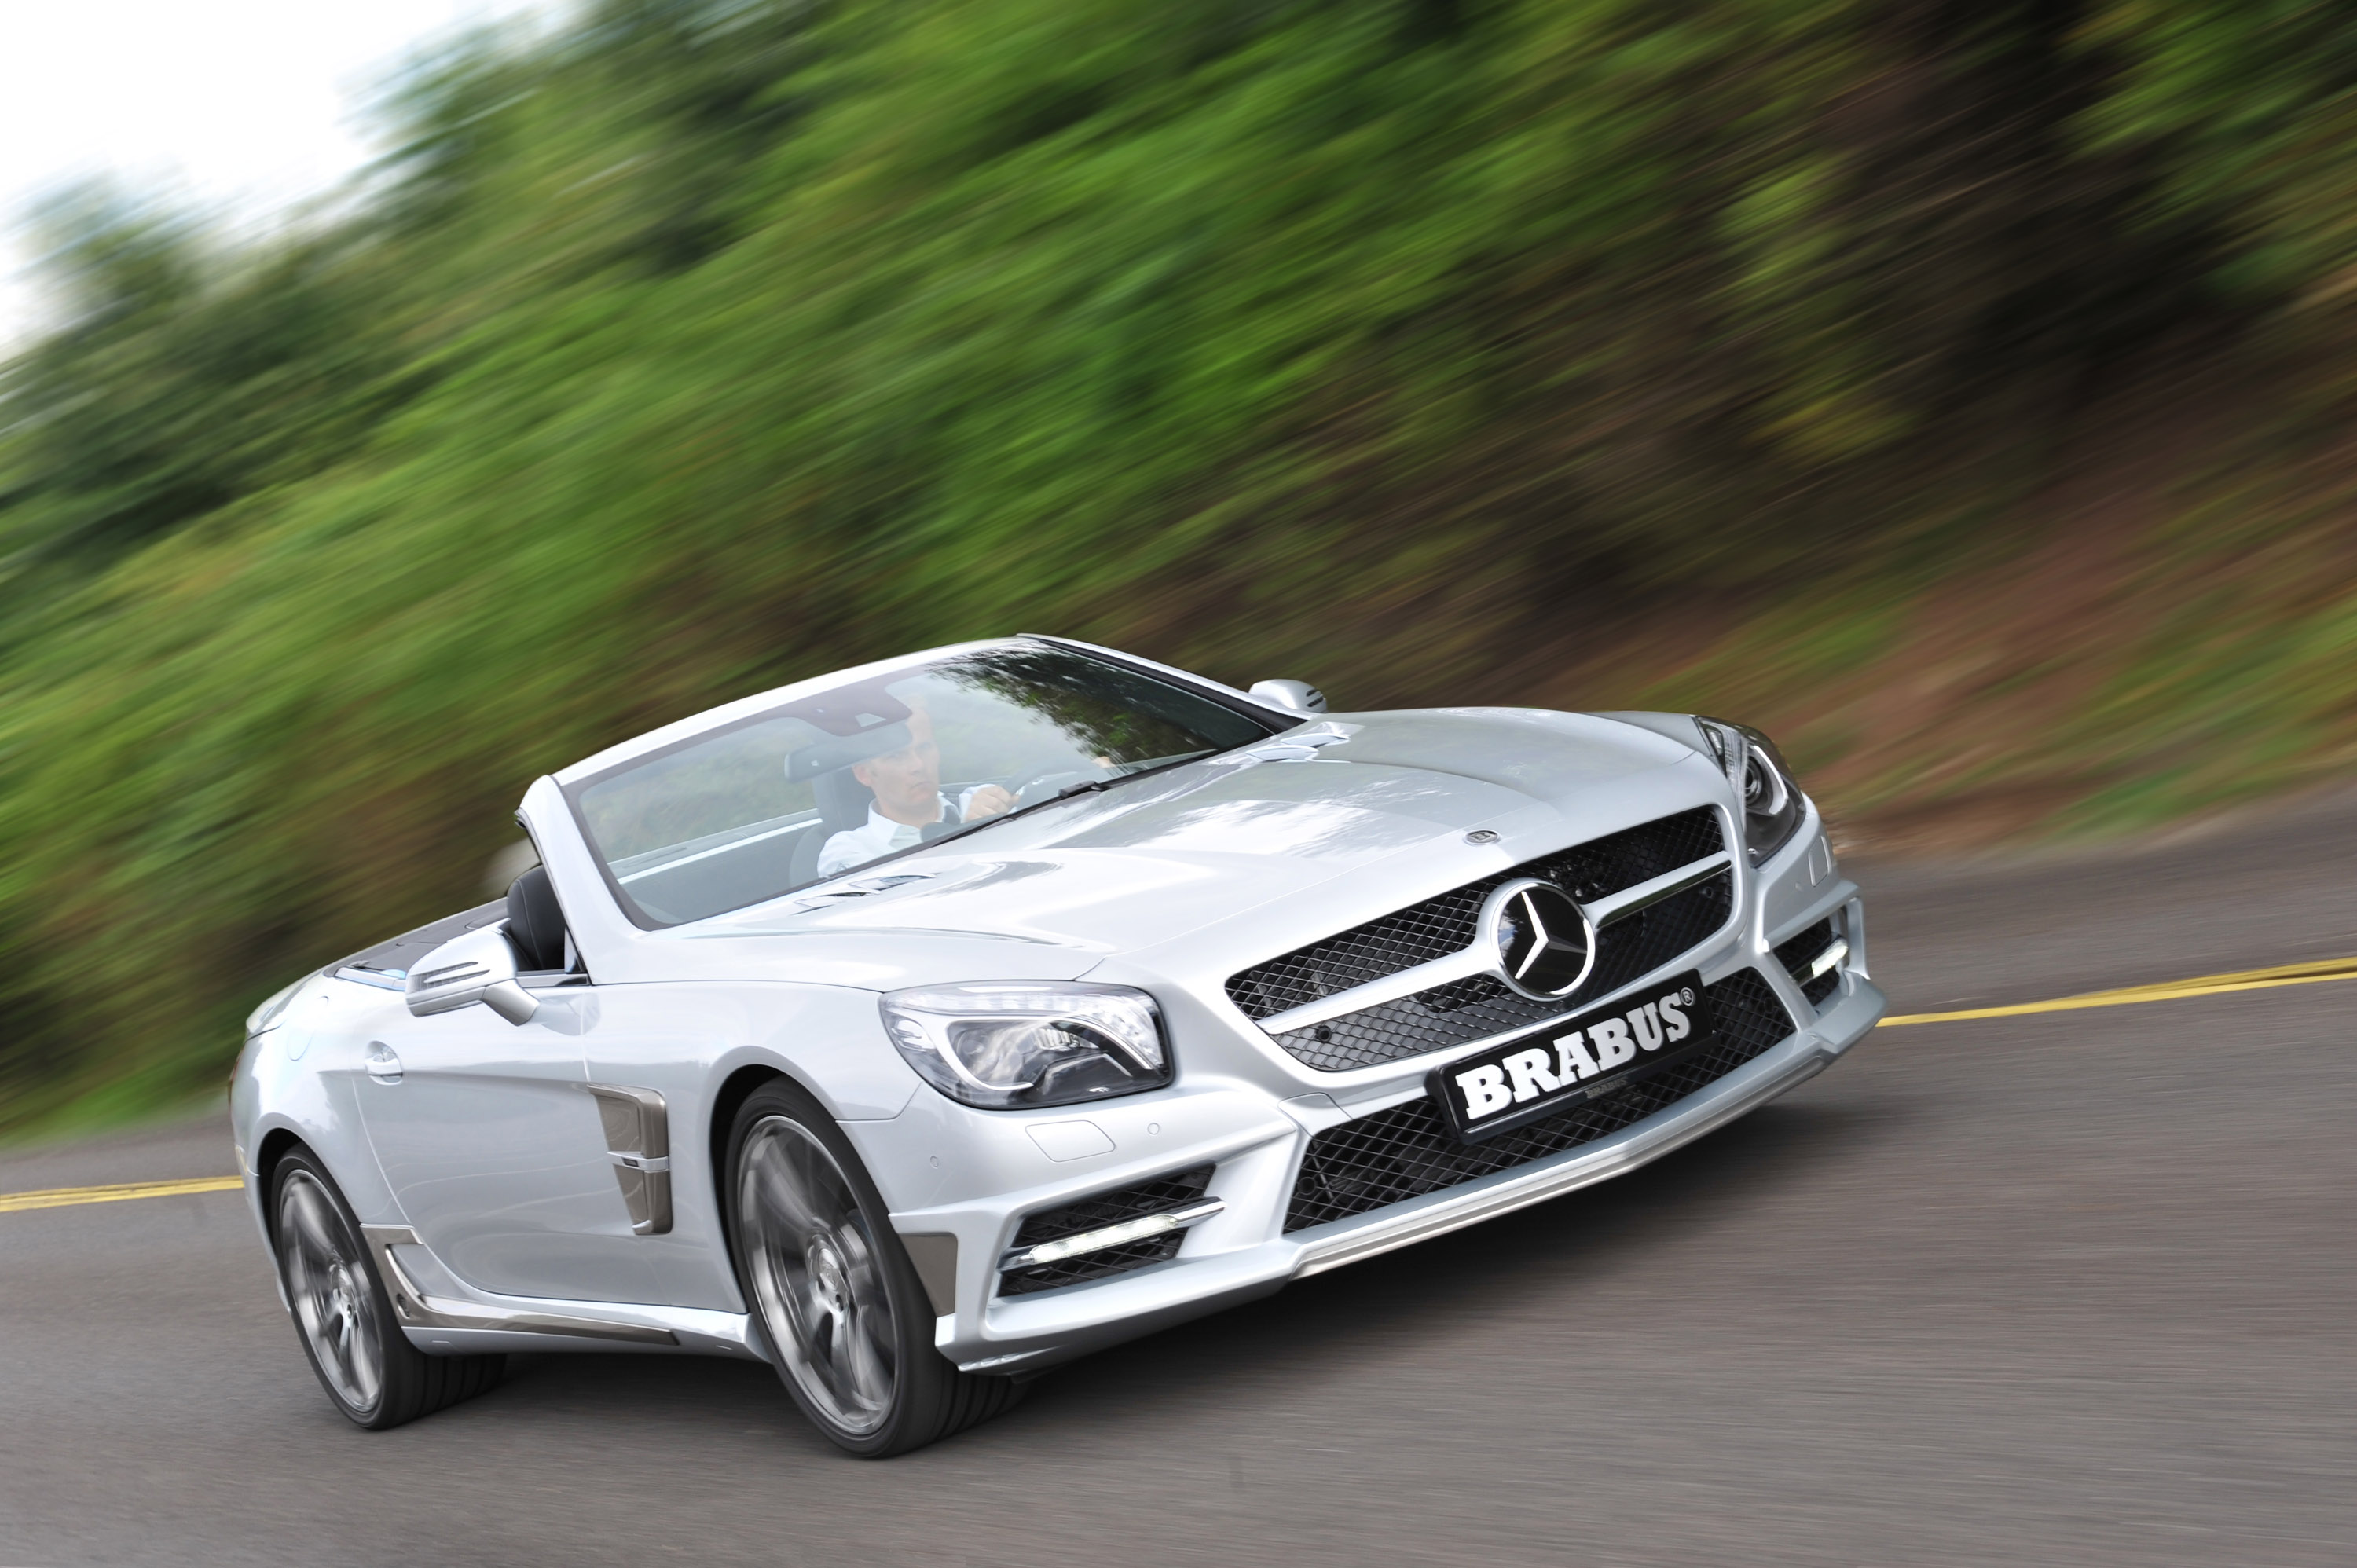 Brabus 2013 Mercedes Sl Class Beast On Wheels